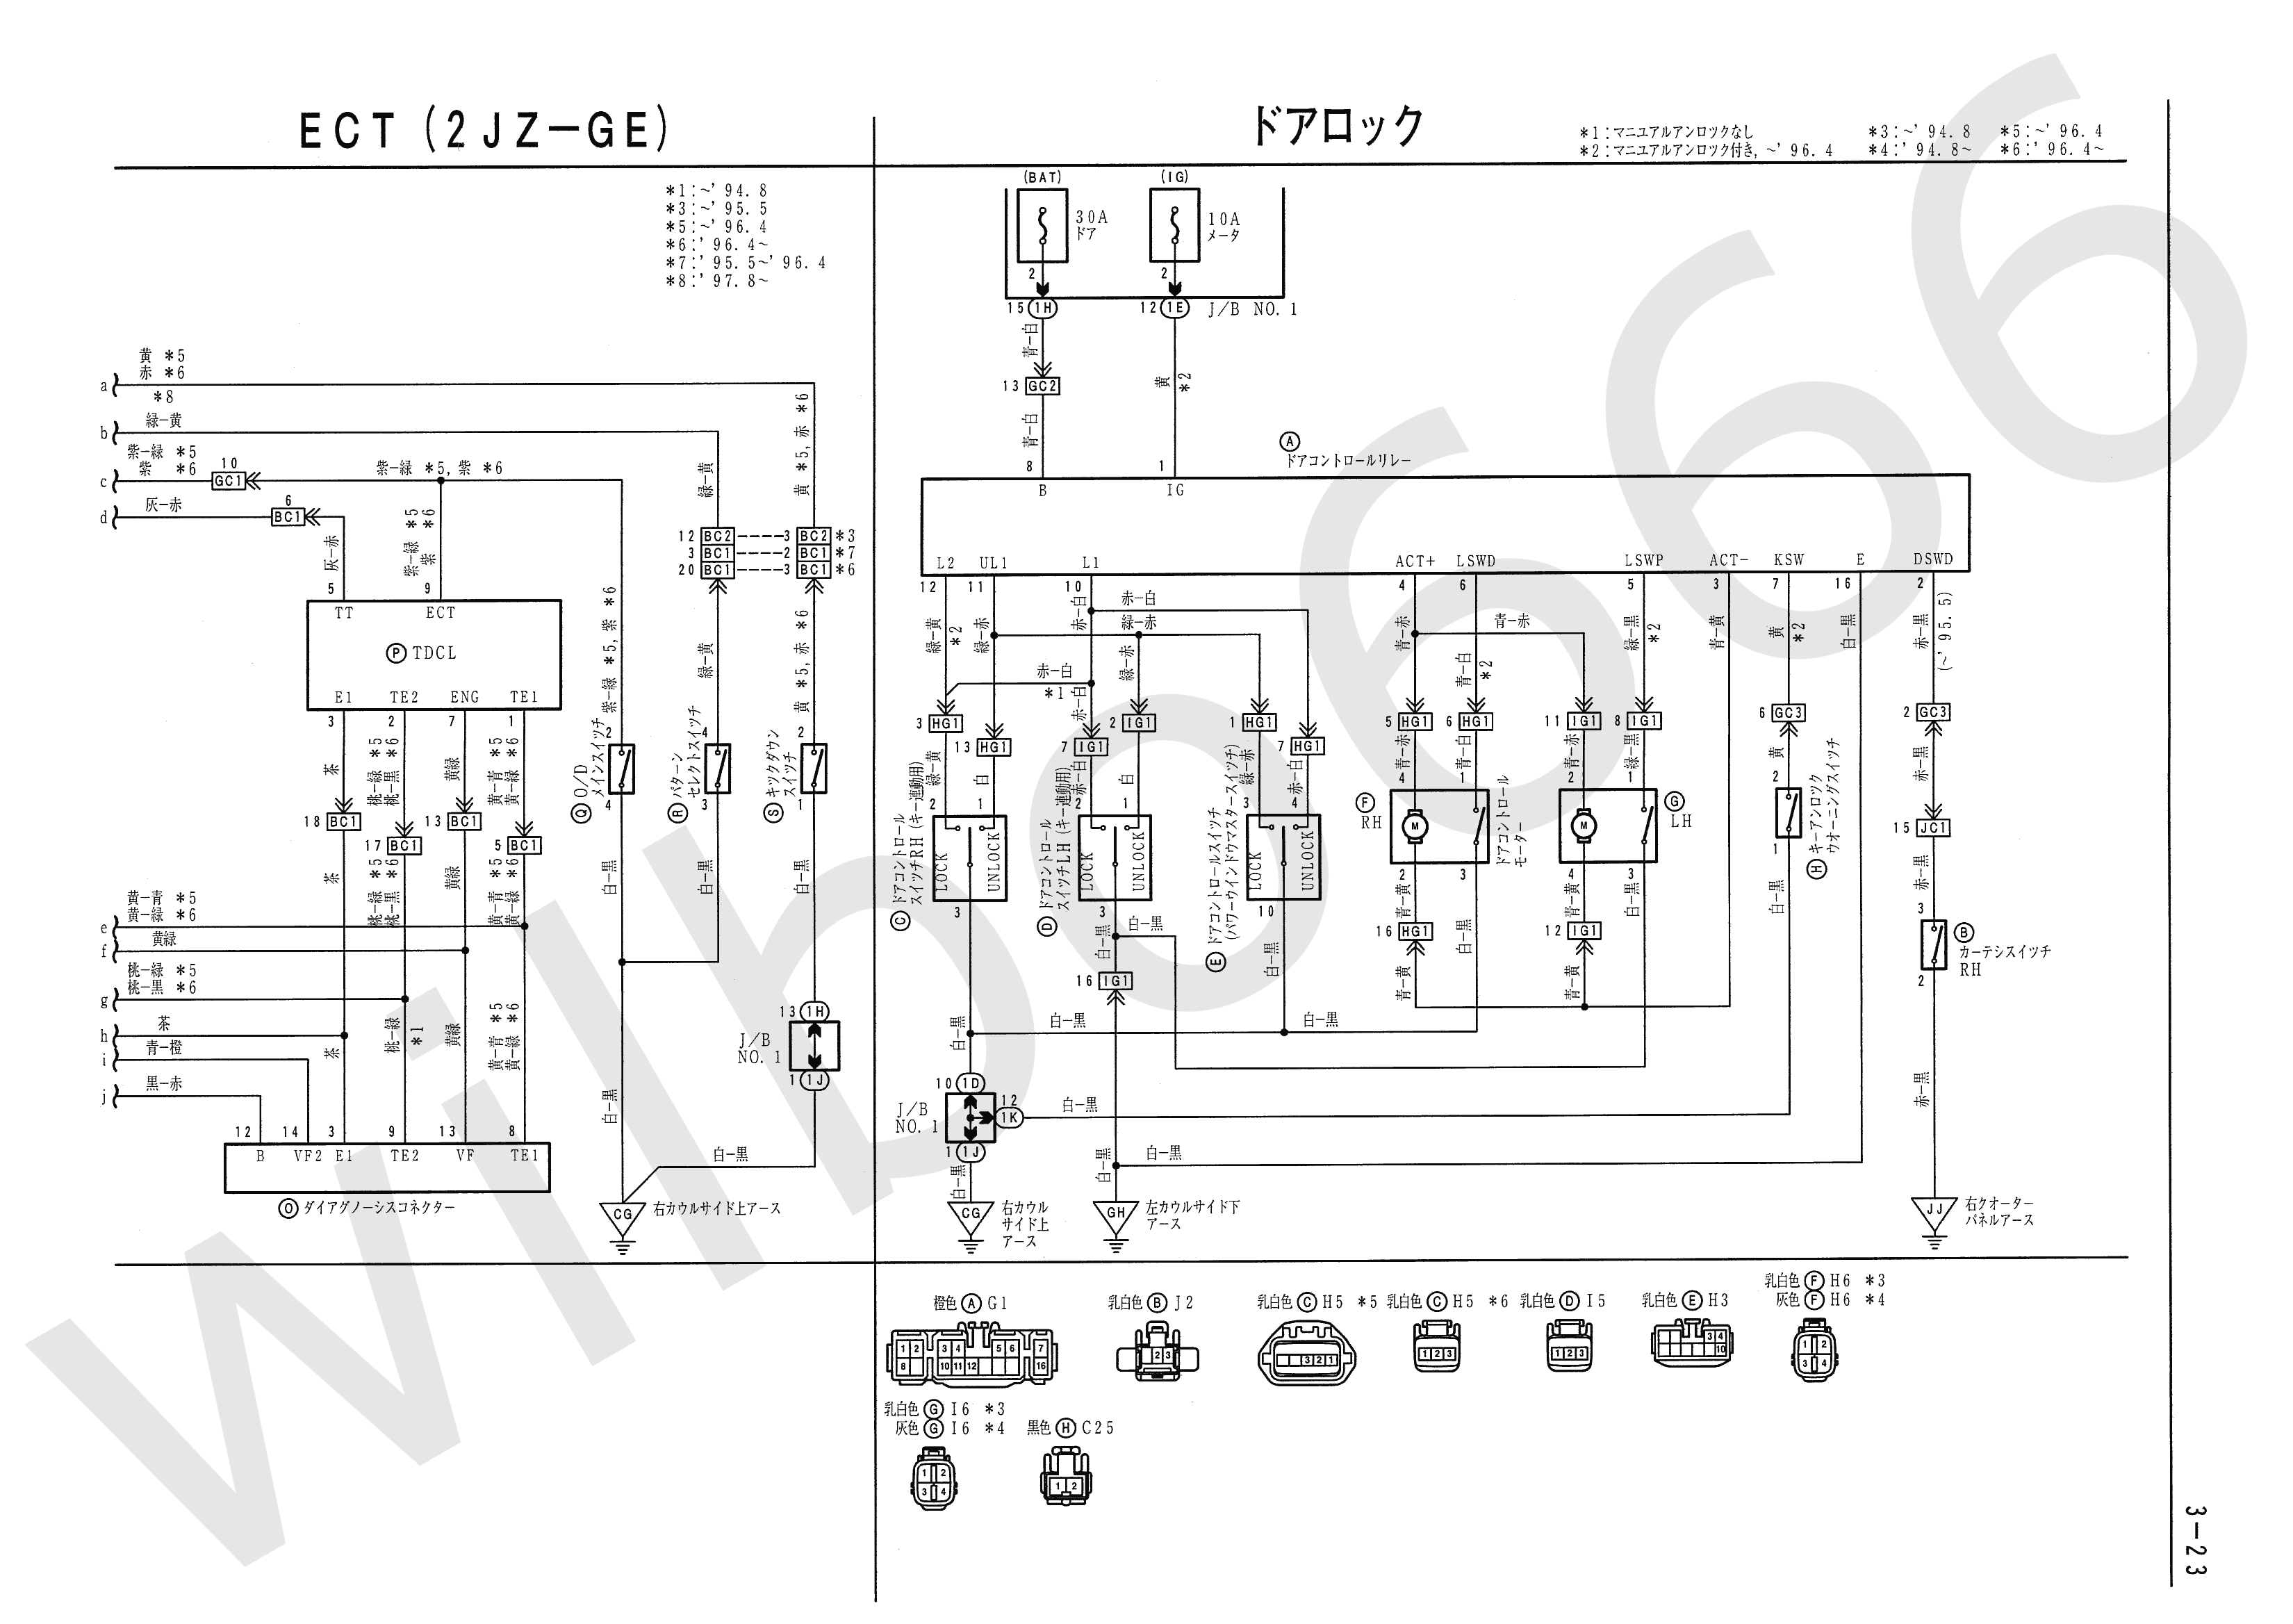 Wiring Diagram For Ge Low Voltage Switches Relays Electrical Relay Switch Rr9 Schematic Diagrams